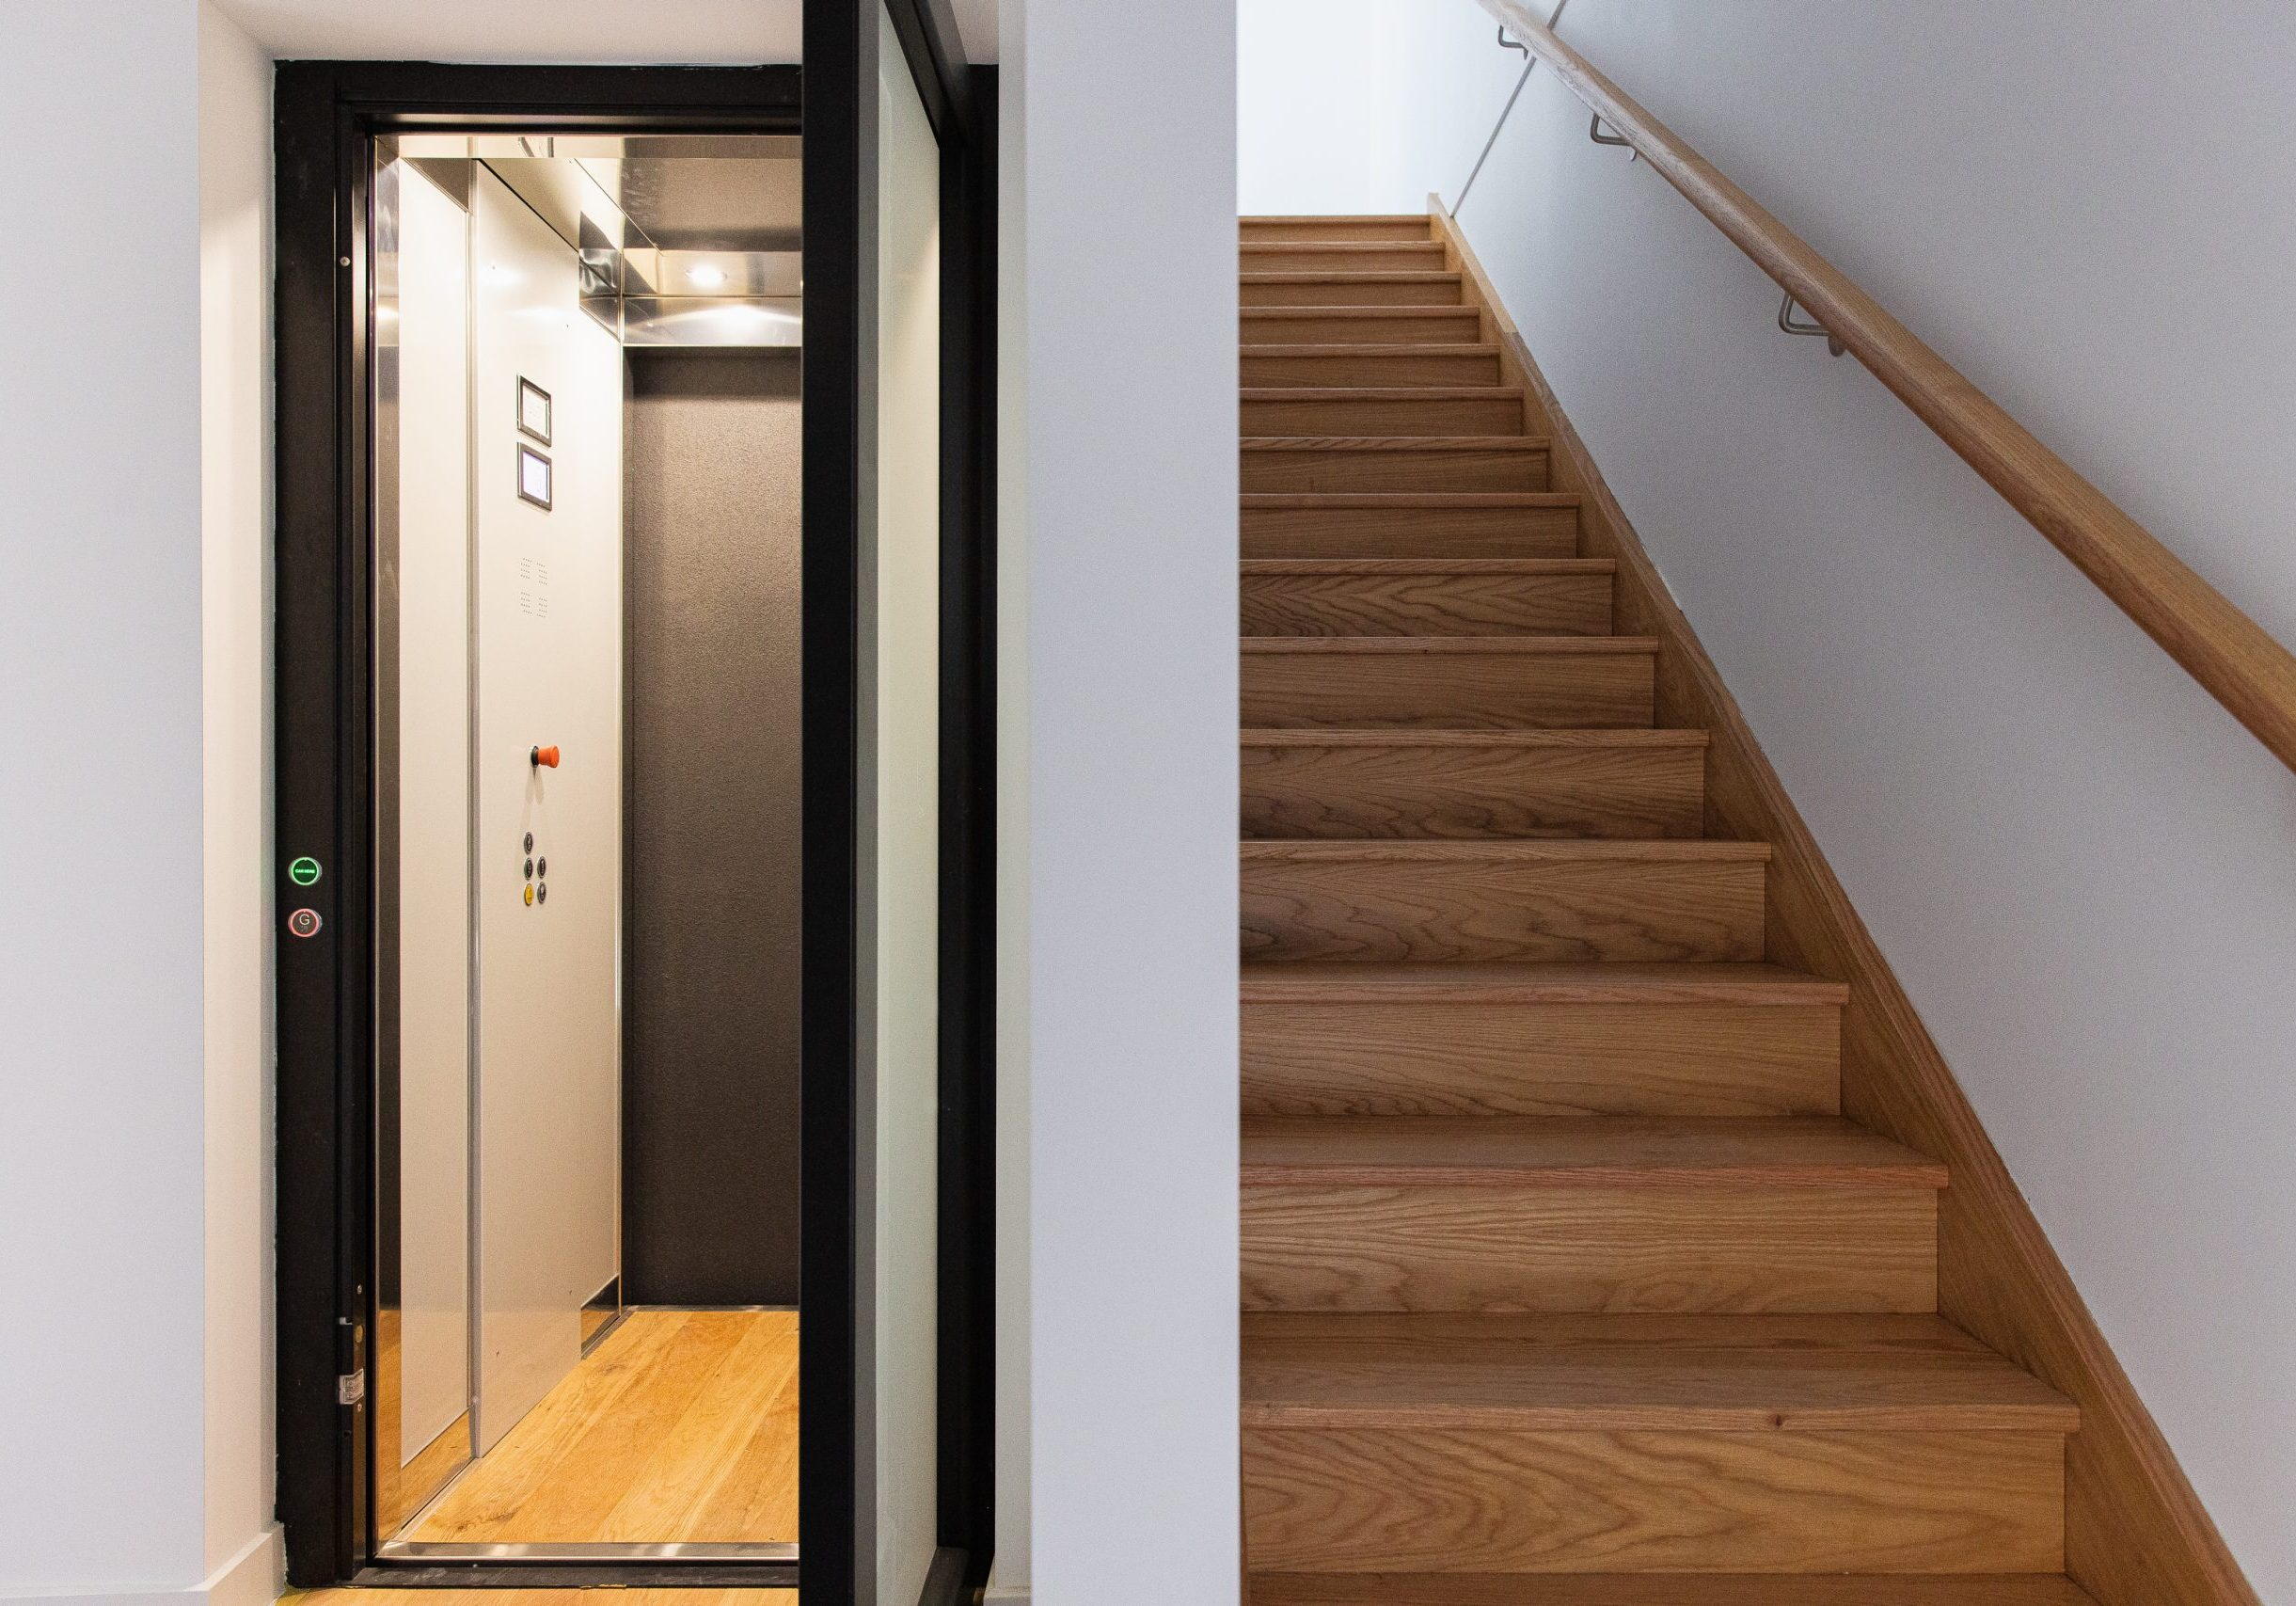 open door elevator with a dark frame and wooden floors next to a wooden staircase.